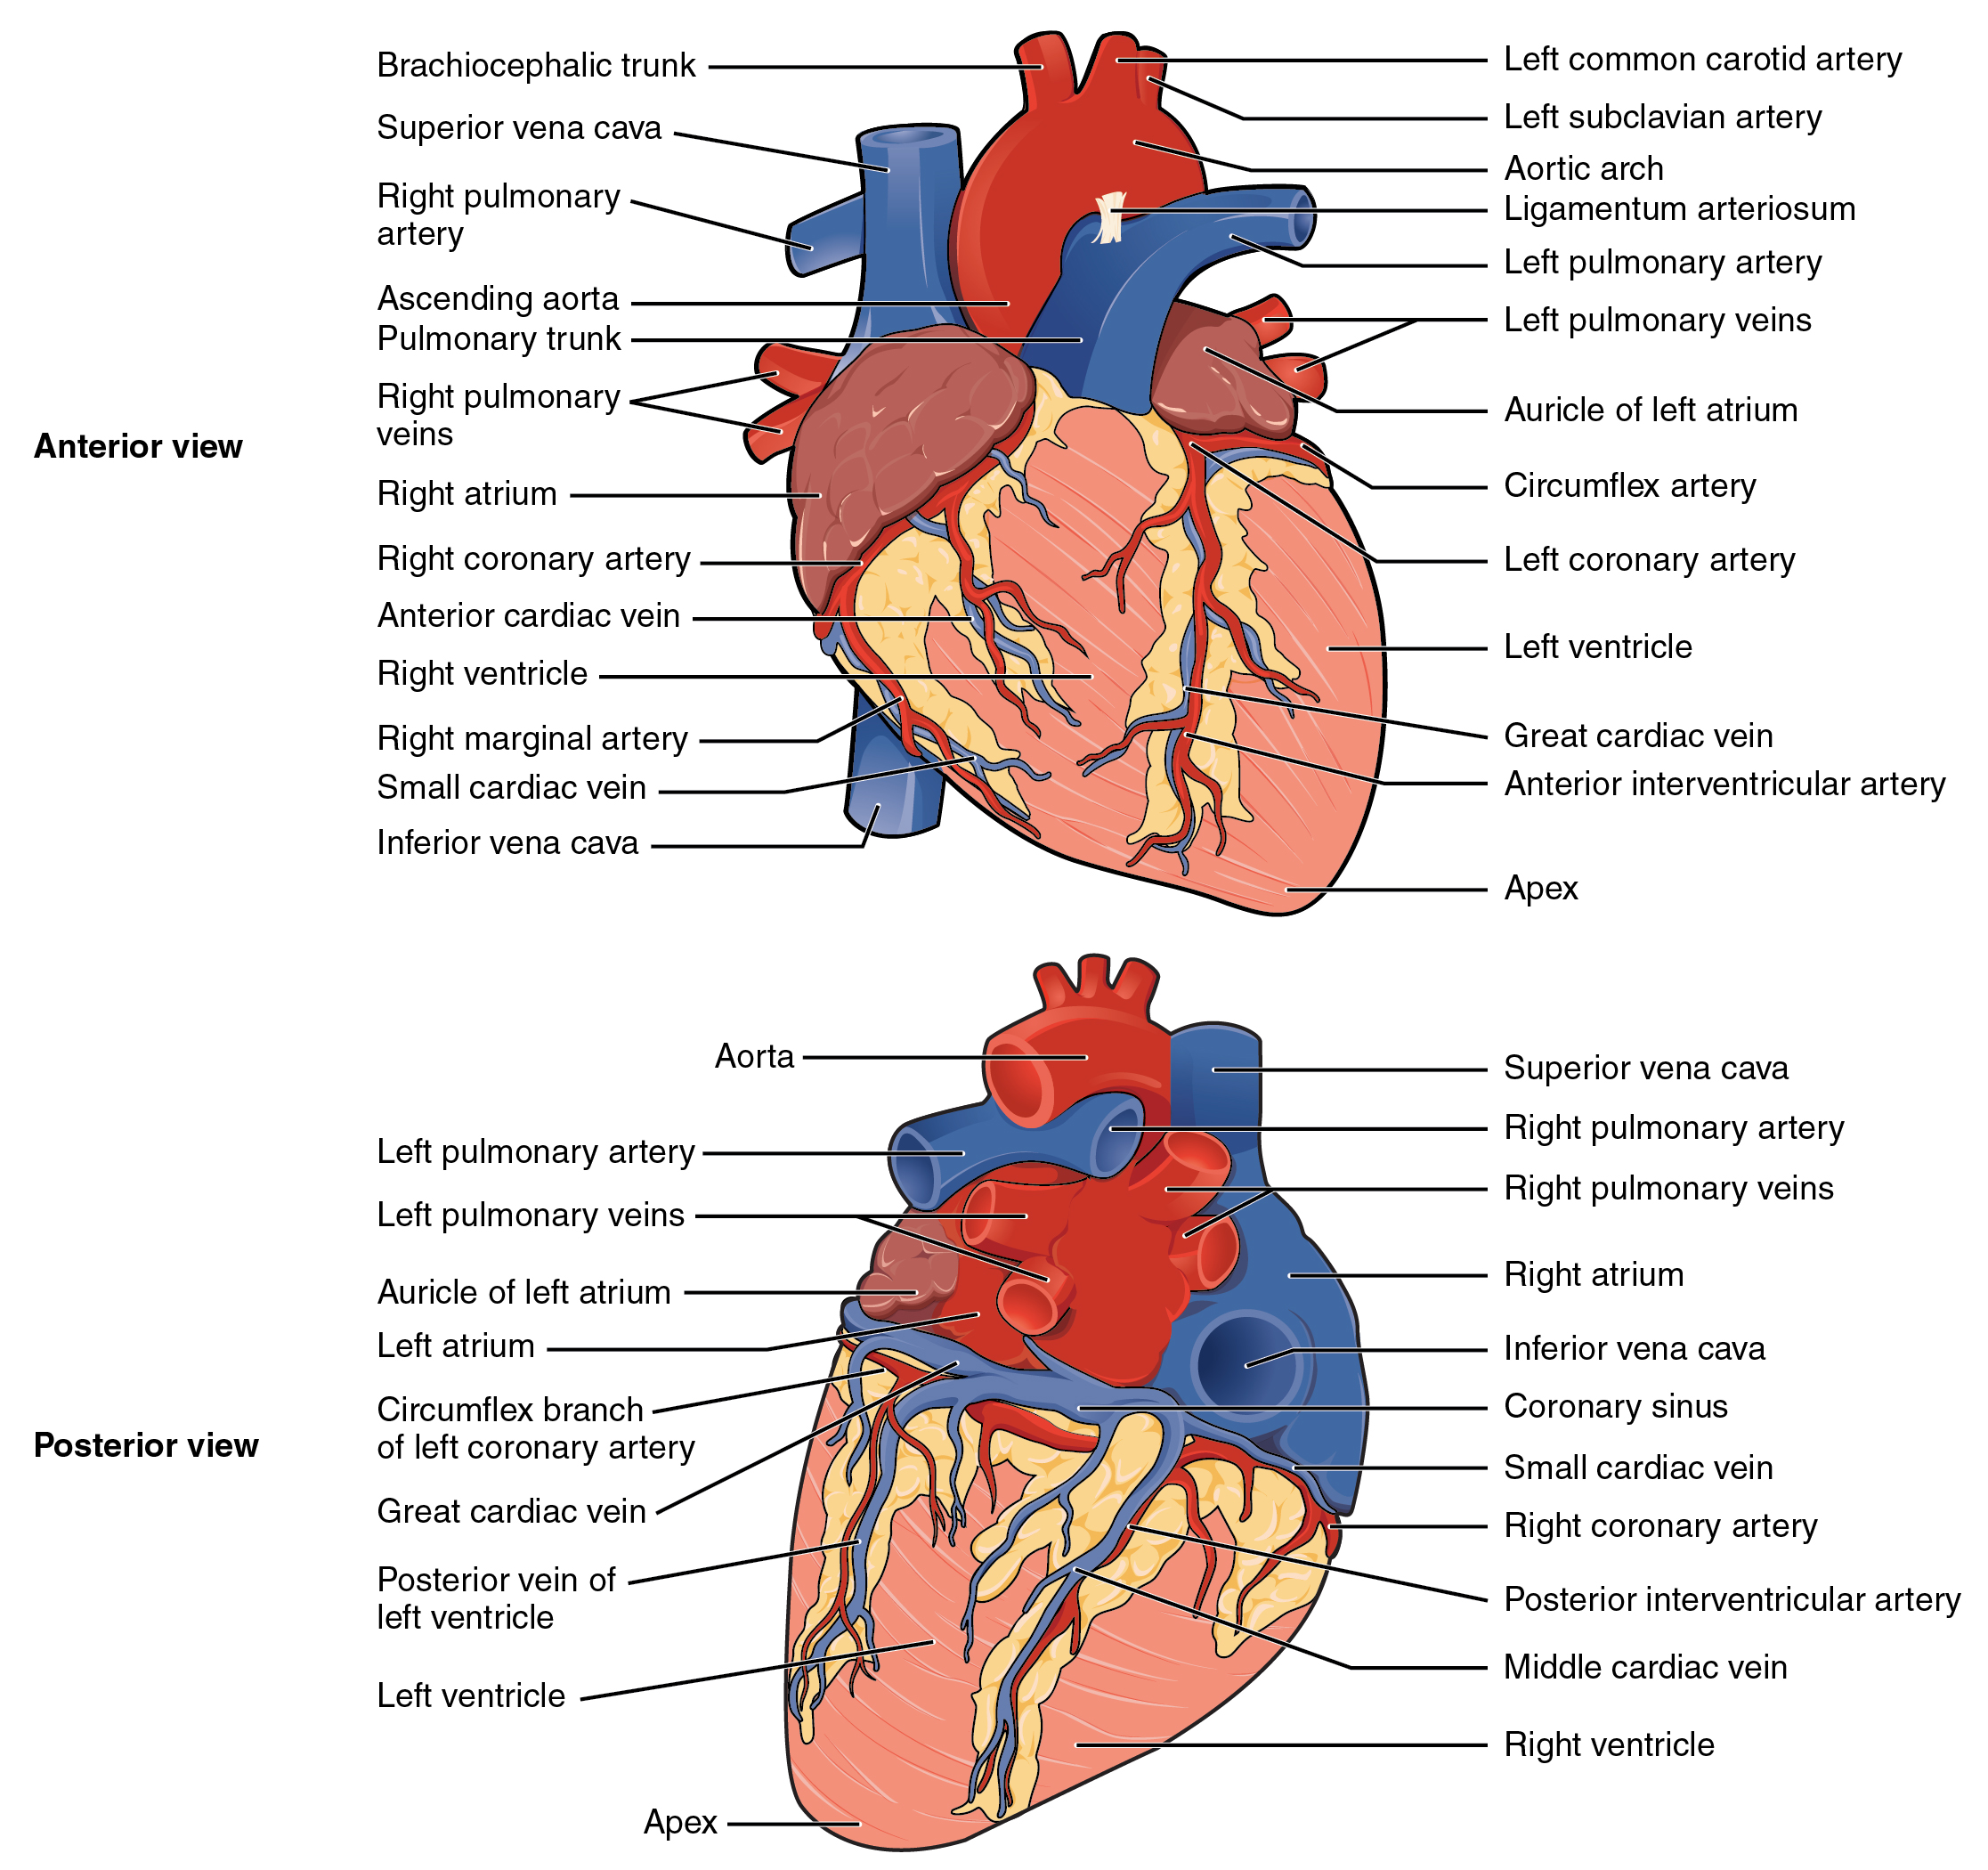 review sheet exercise 30 anatomy of the heart answers - Carnaval ...